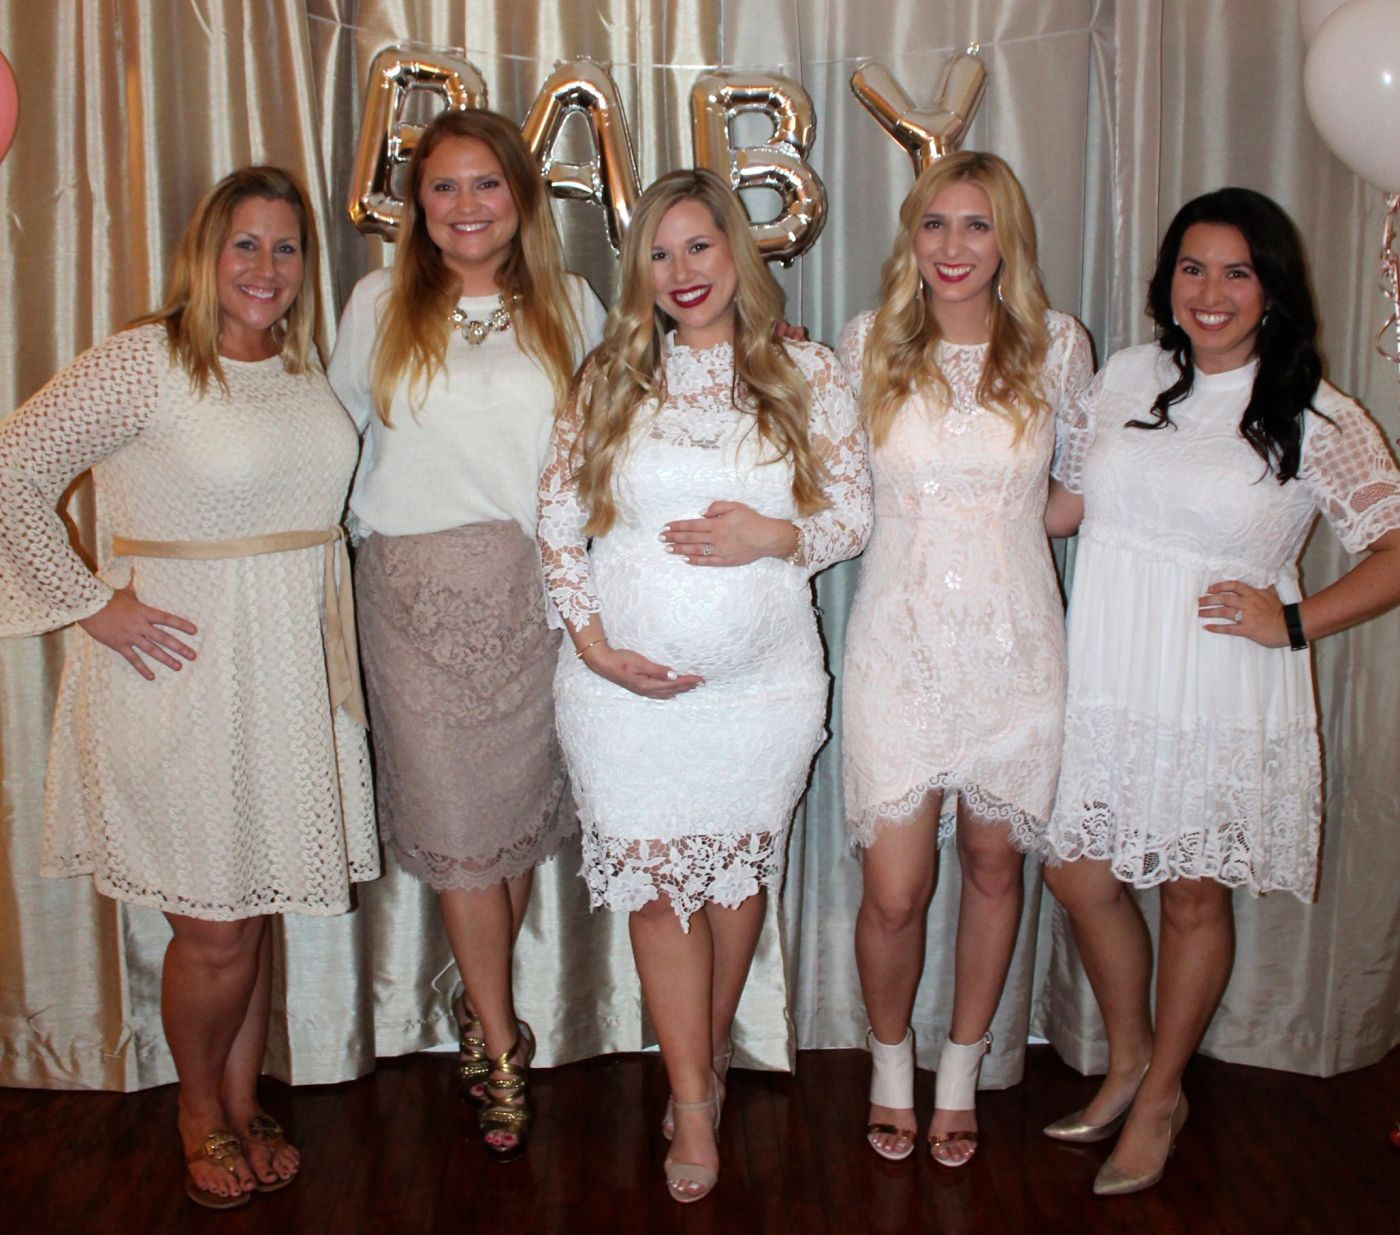 White Baby Shower All Guests Wear White Baby Shower Outfit Winter Wonderland Baby Shower Baby Shower Outfit For Guest [ 1235 x 1400 Pixel ]